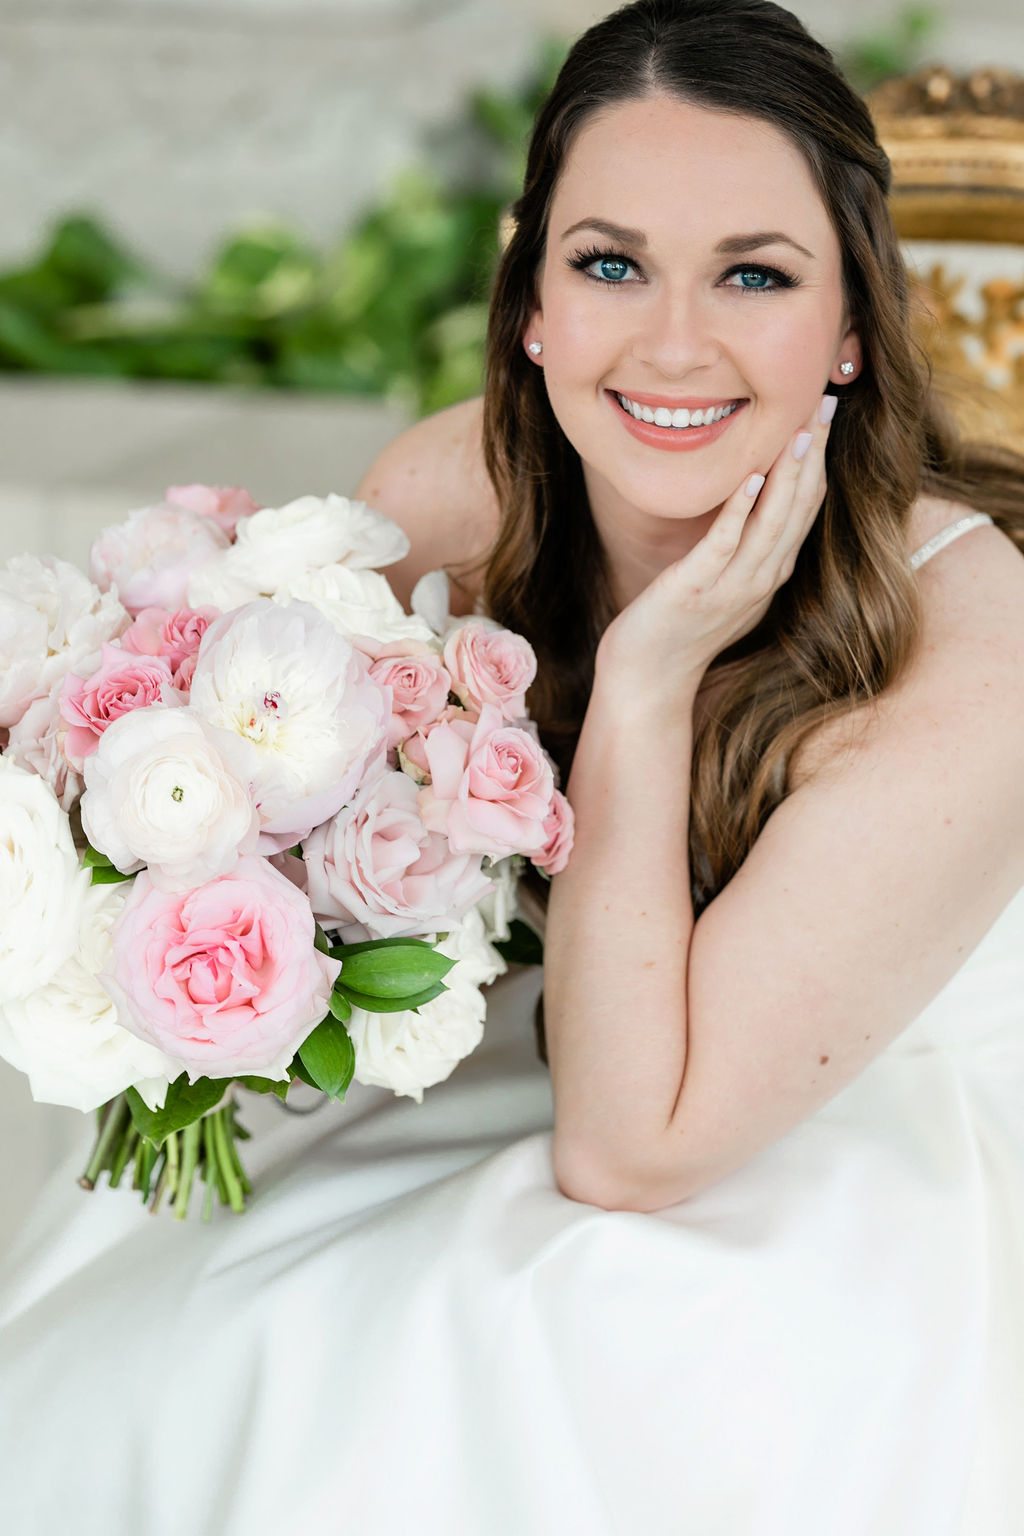 Blushington Blooms Wedding Bouquet: Dreamy Pink and Gray Wedding at The Olana